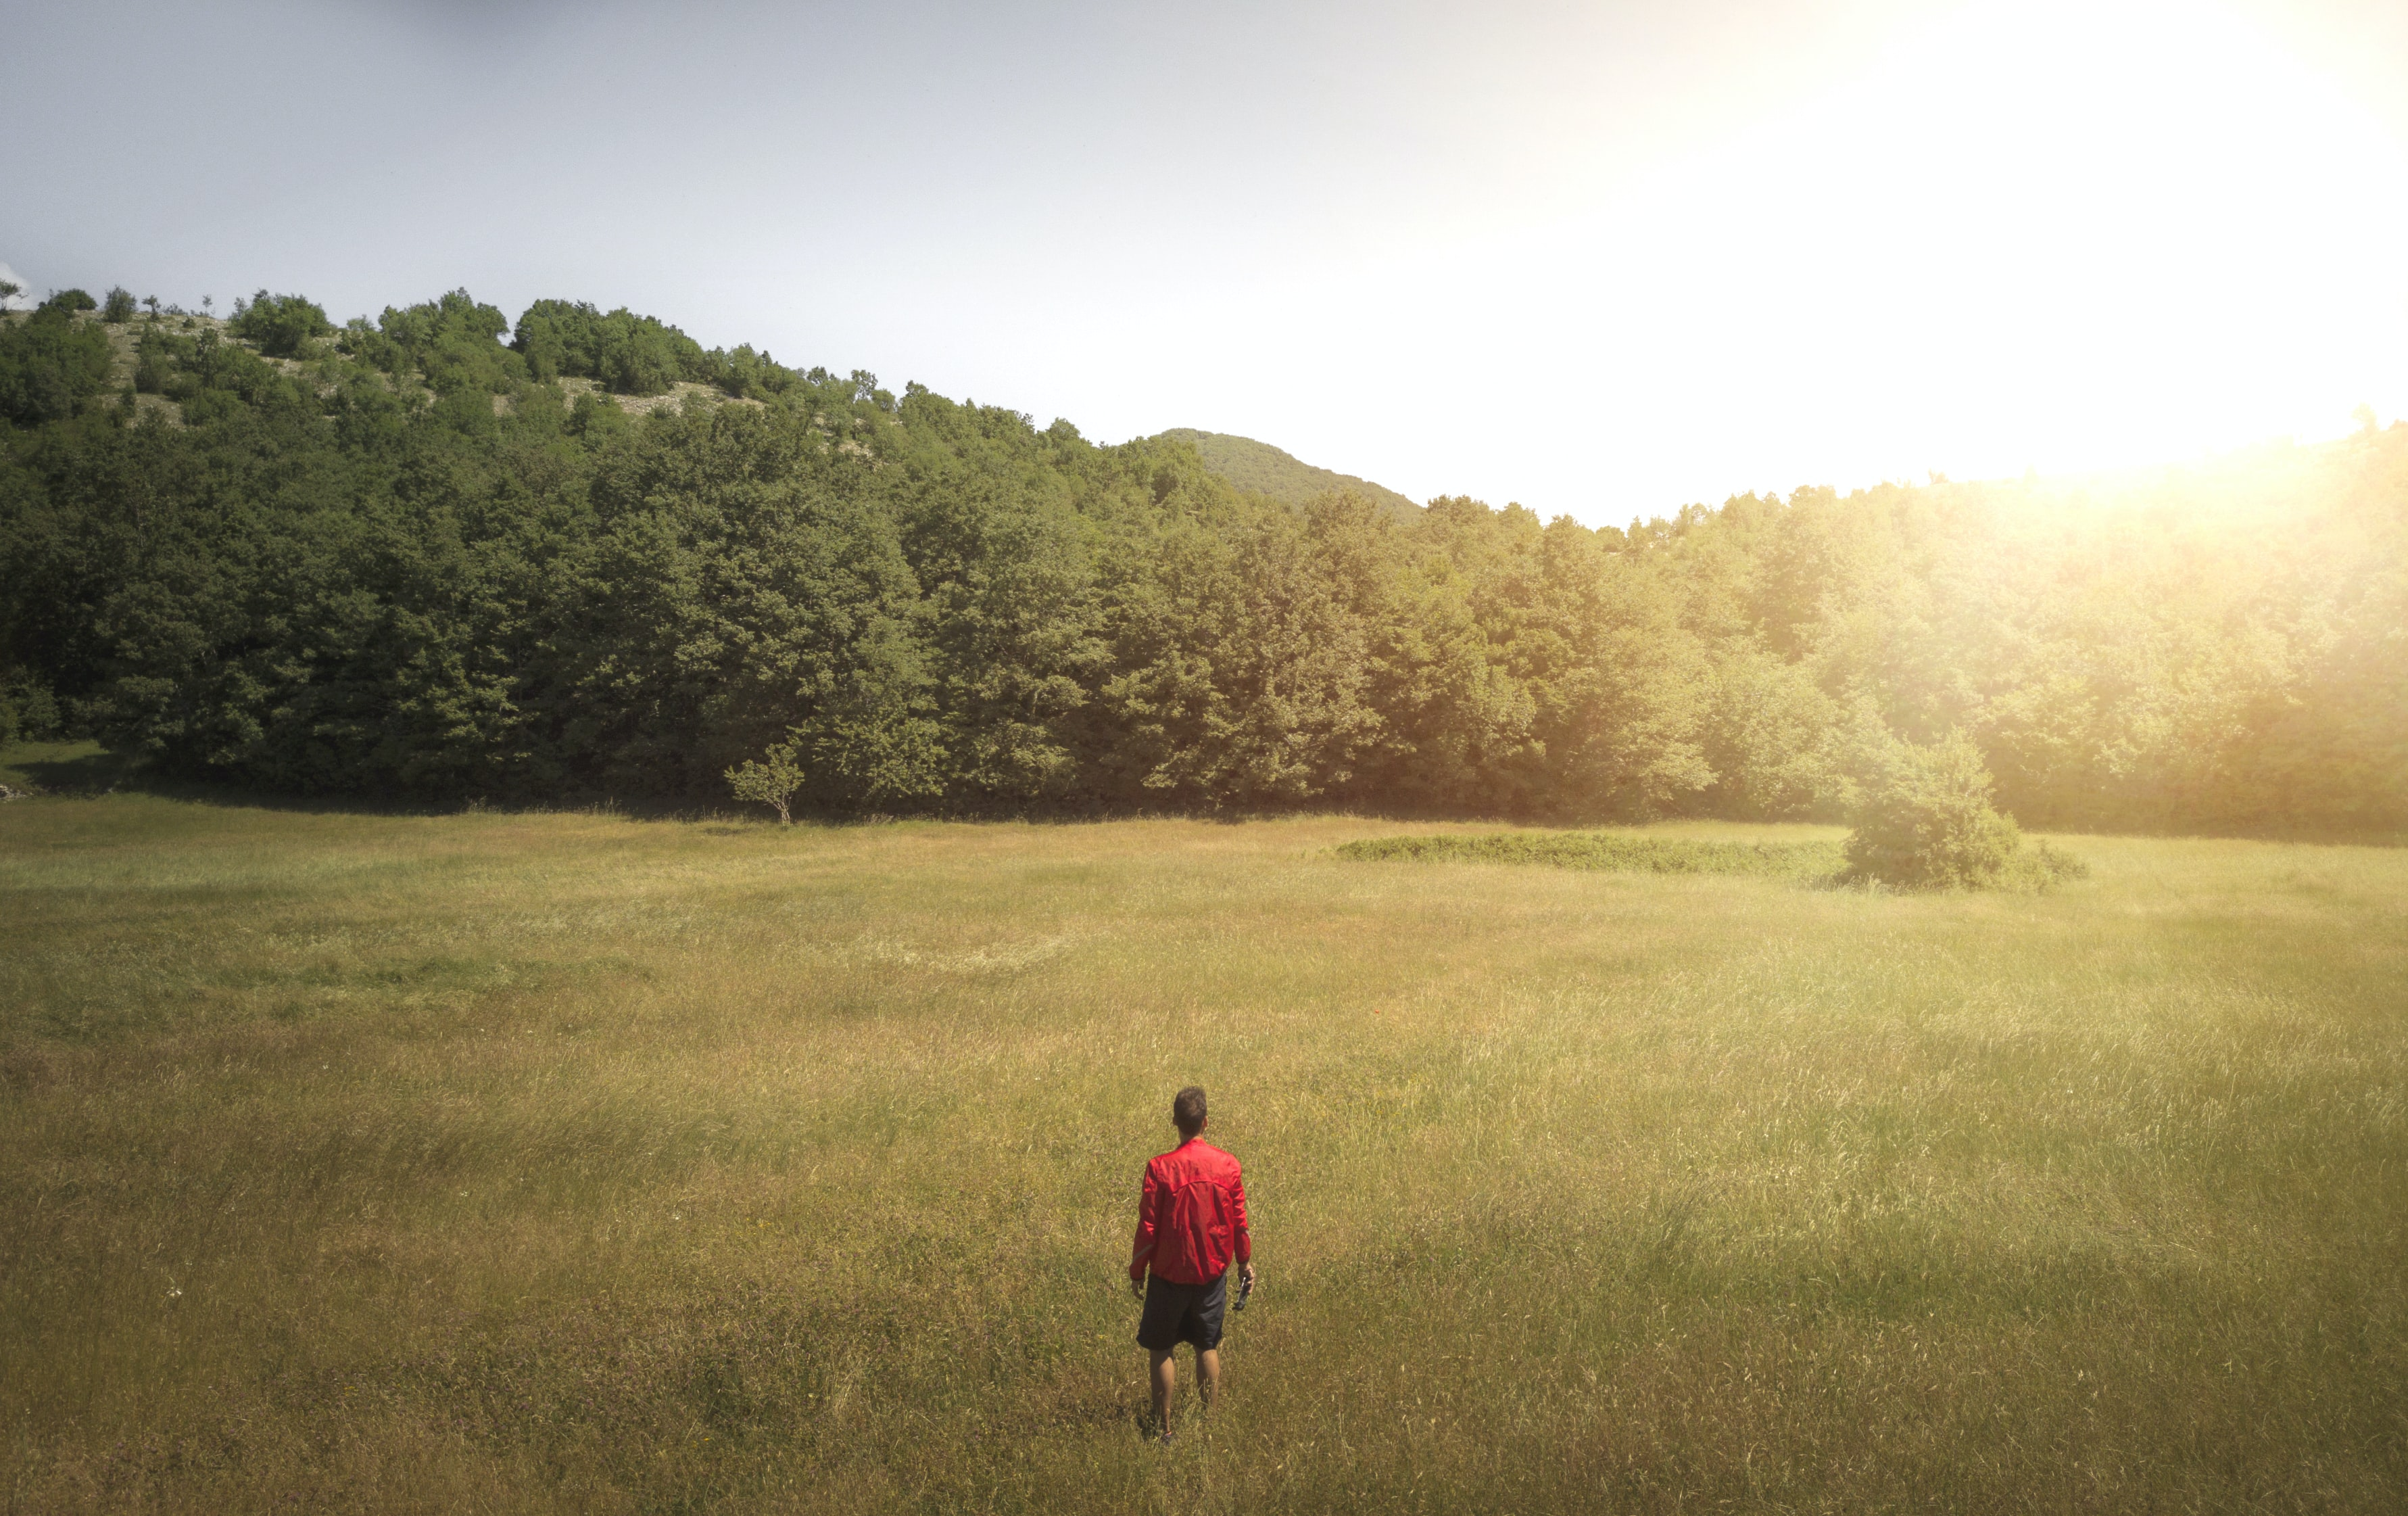 Man in red shirt and gray shorts standing in the middle of a field staring at a hilly tree line